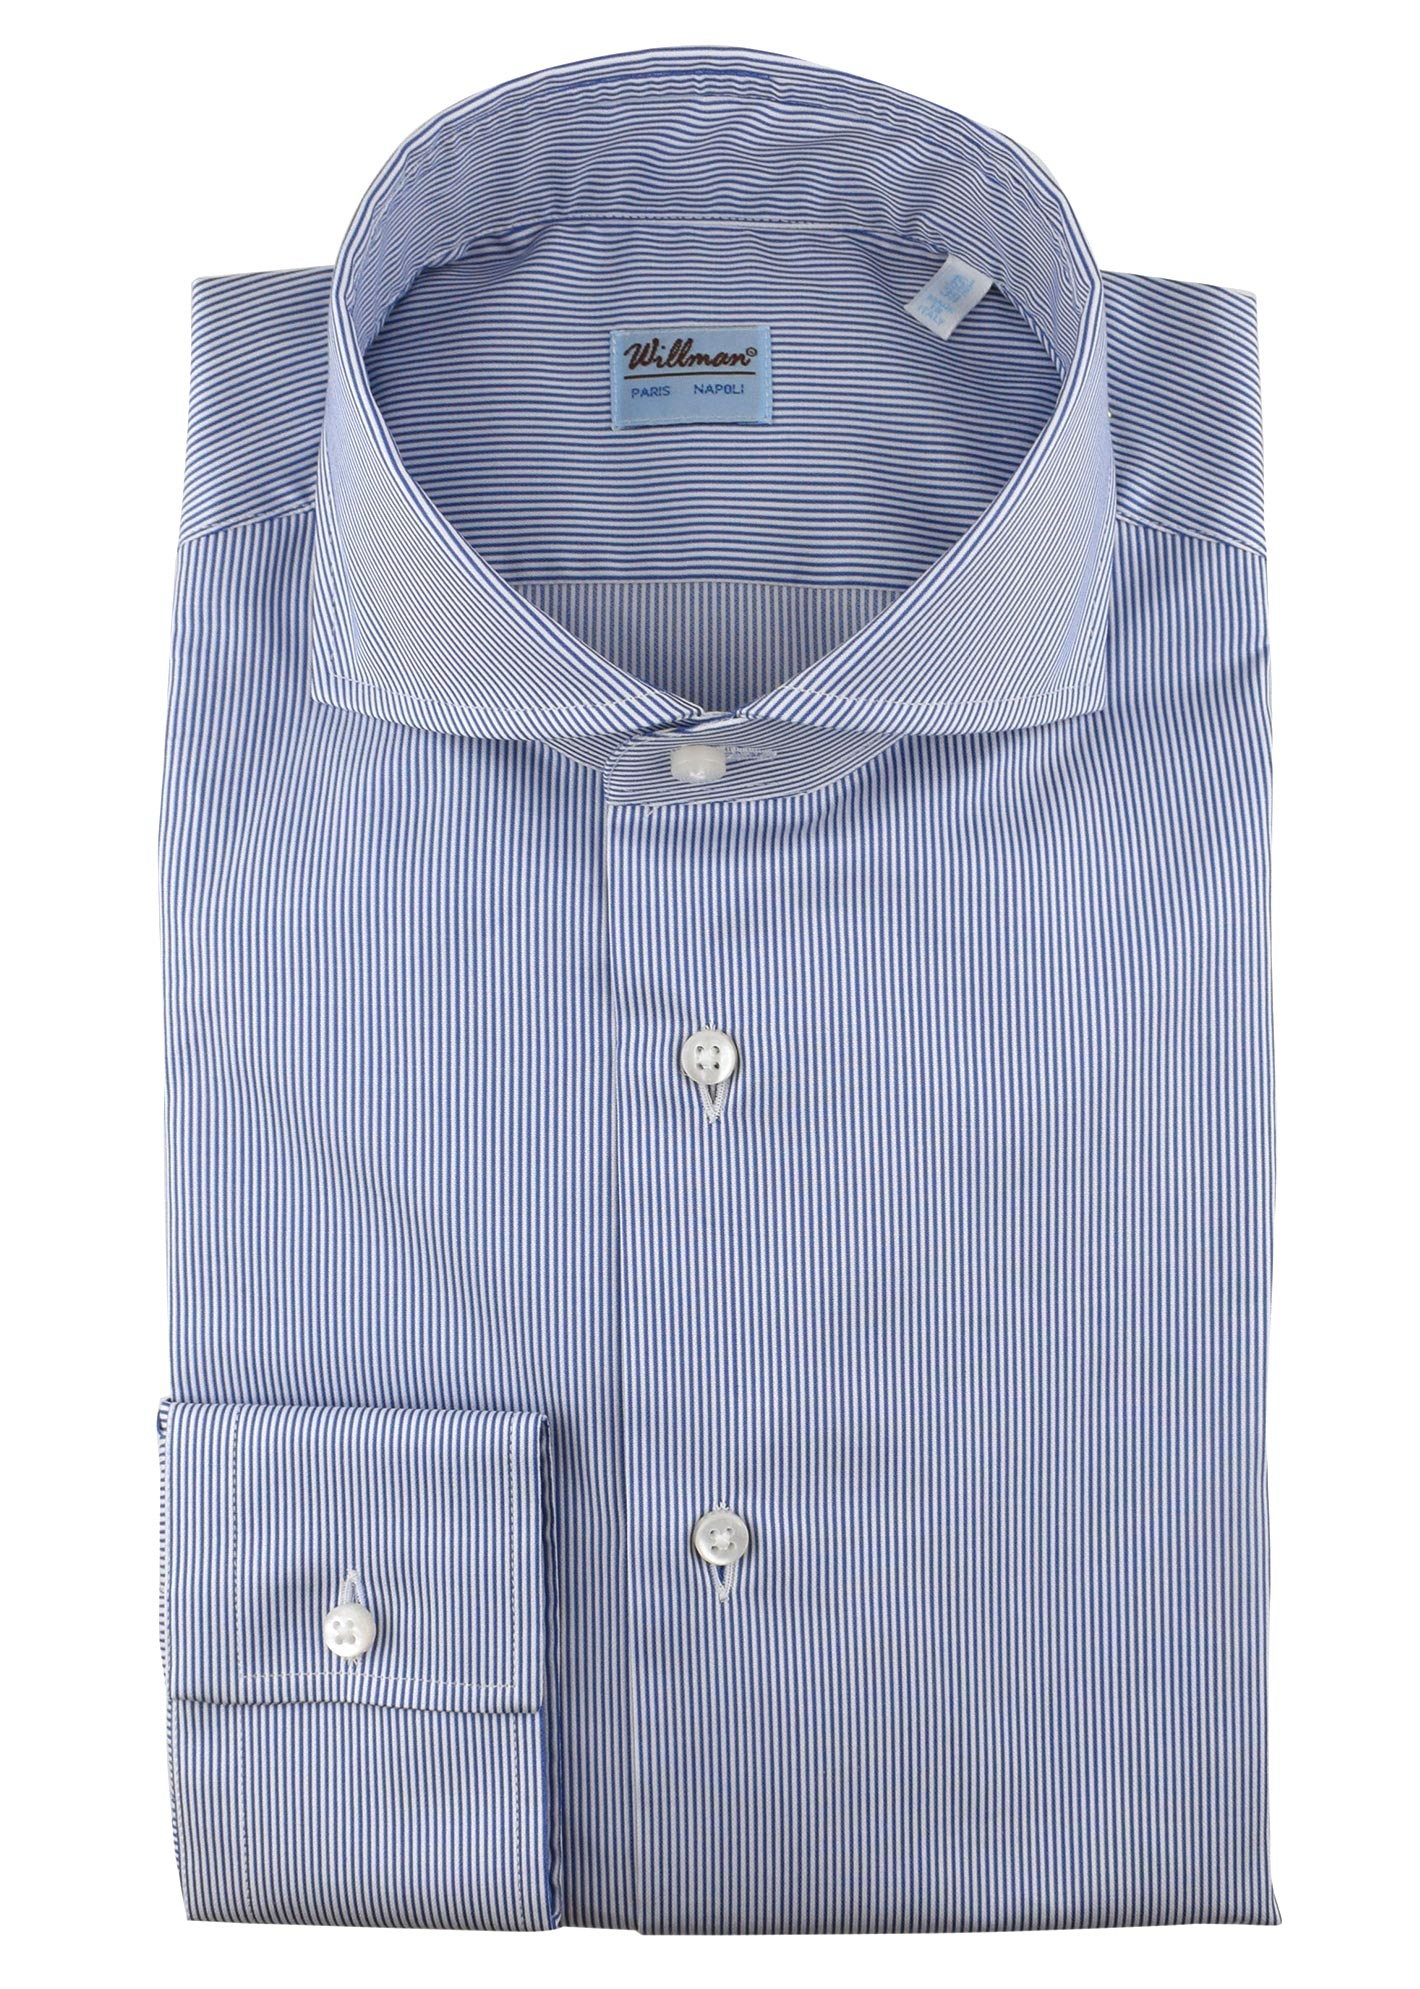 13WCH  - Chemise coton rayures marine